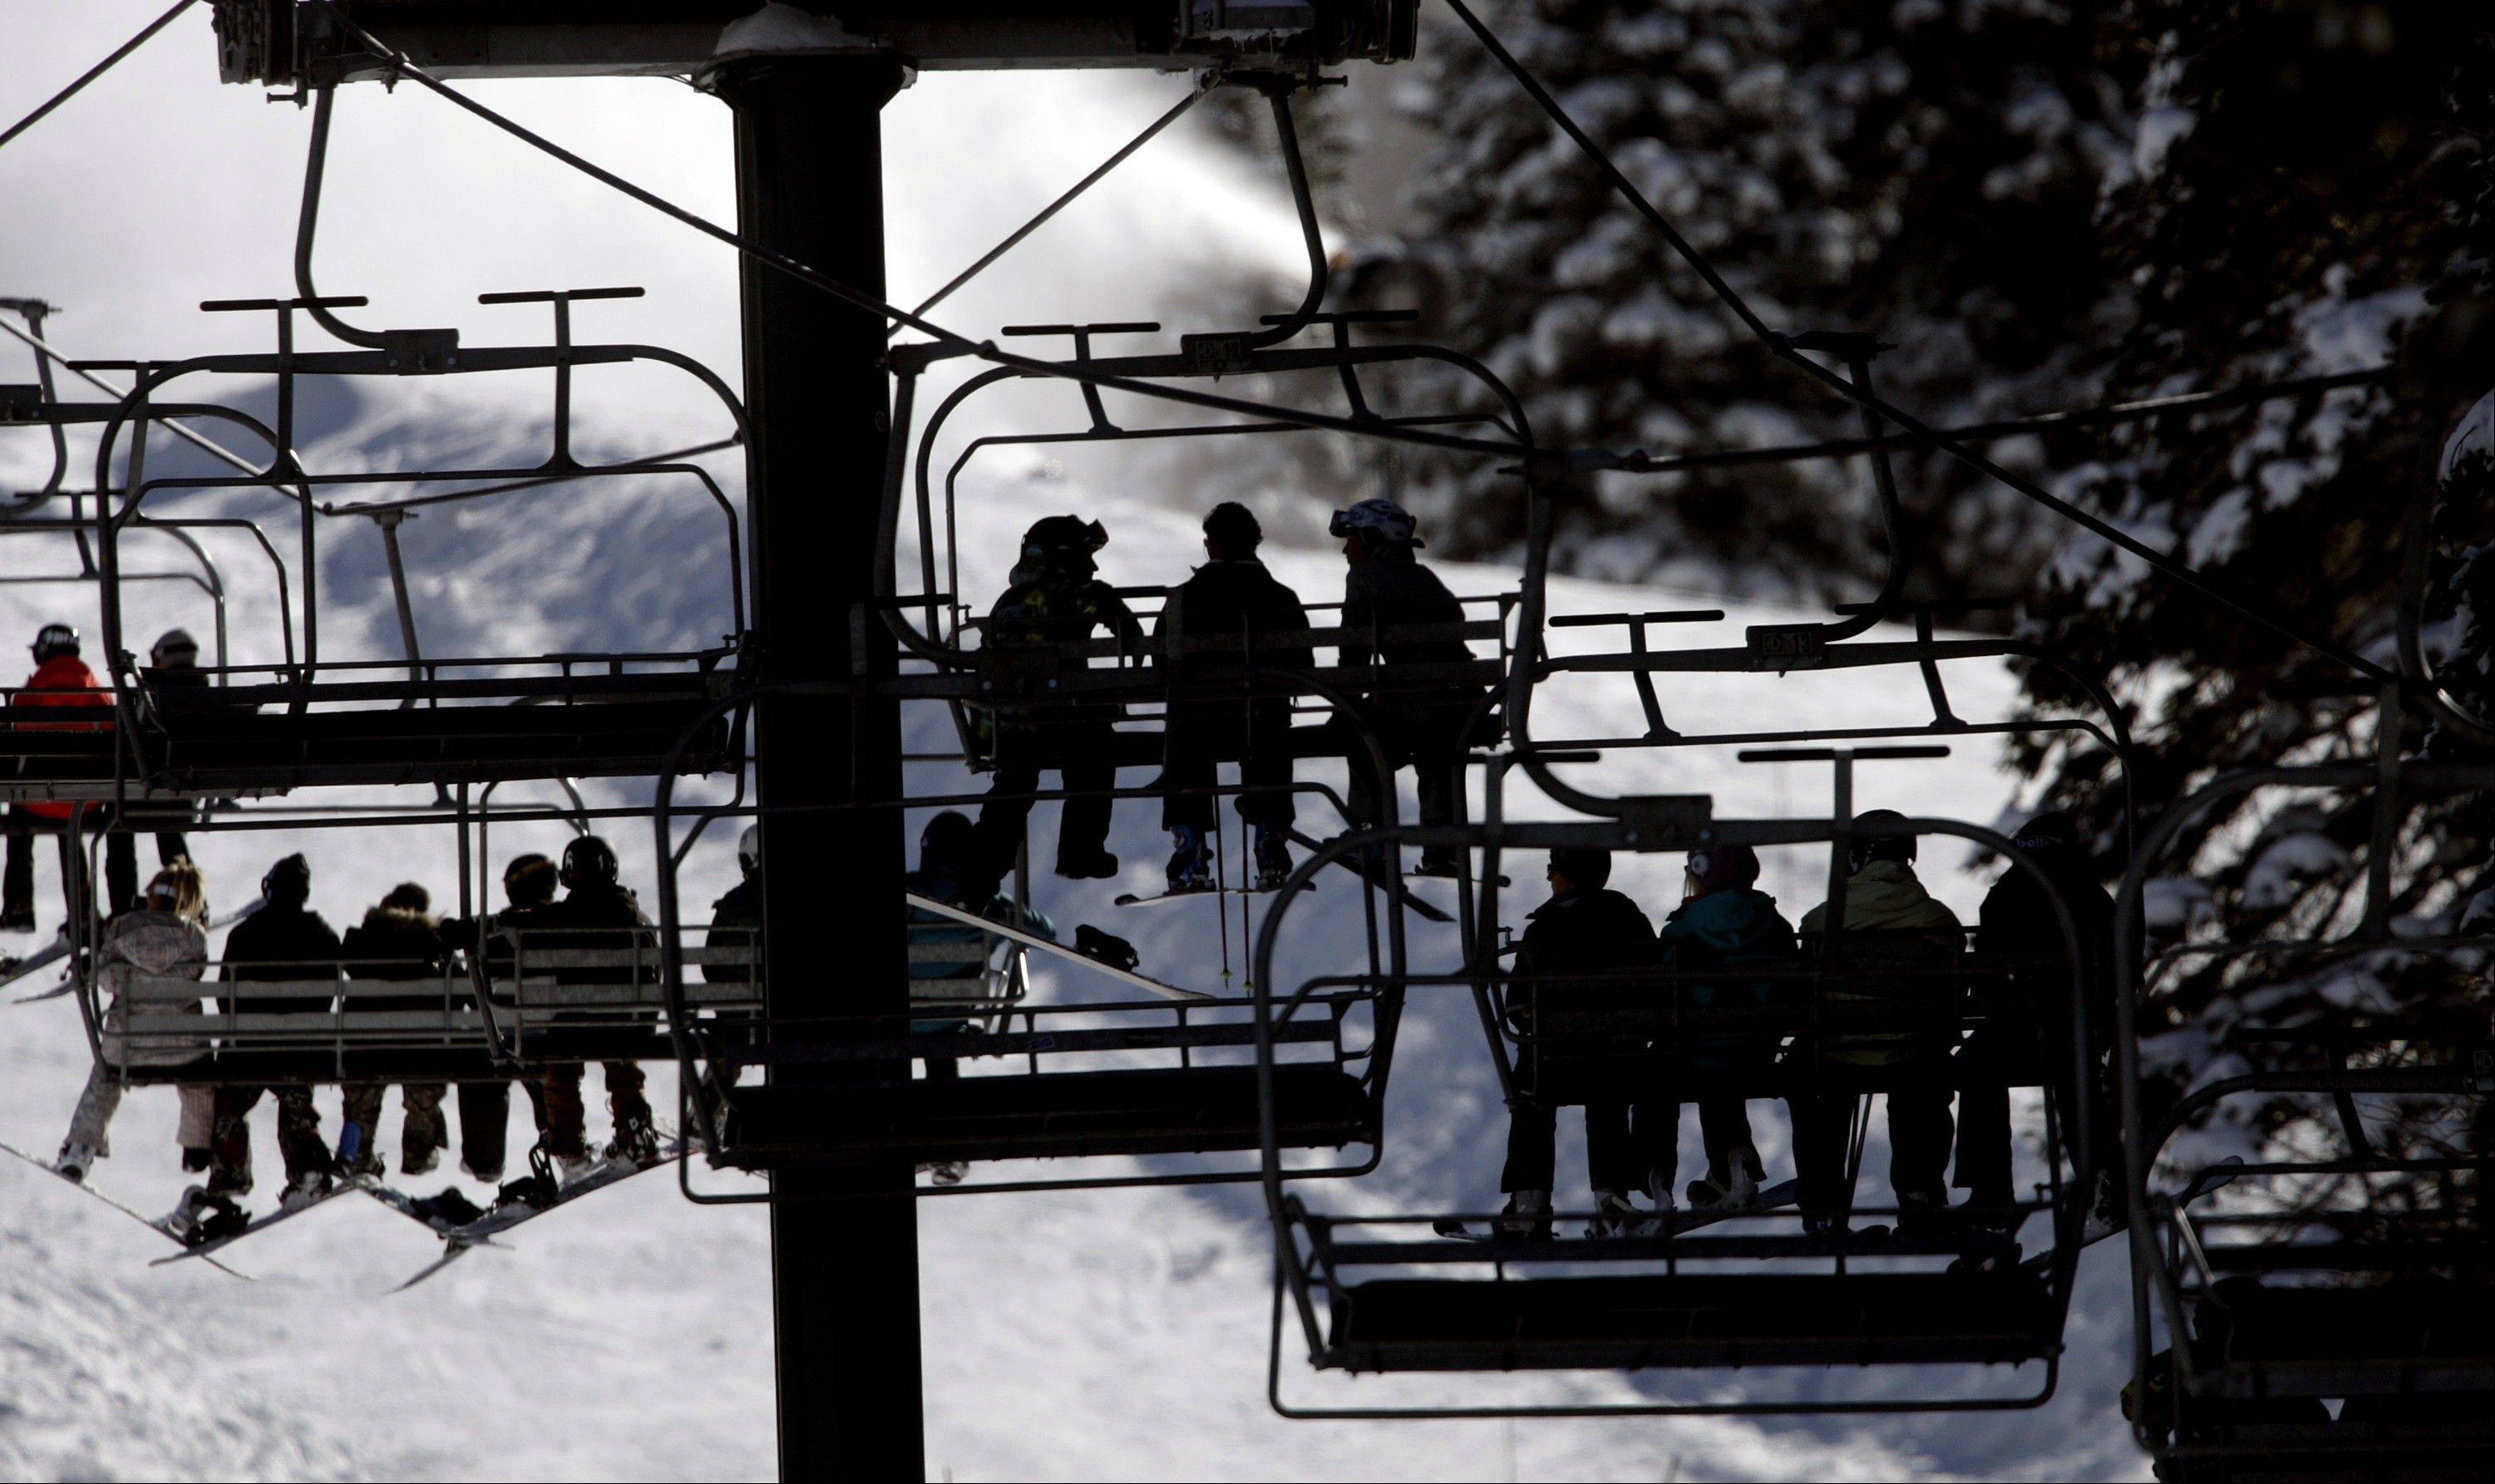 Skiers ride a chair lift line at Brighton Ski Resort in the Wasatch Range, in Utah.